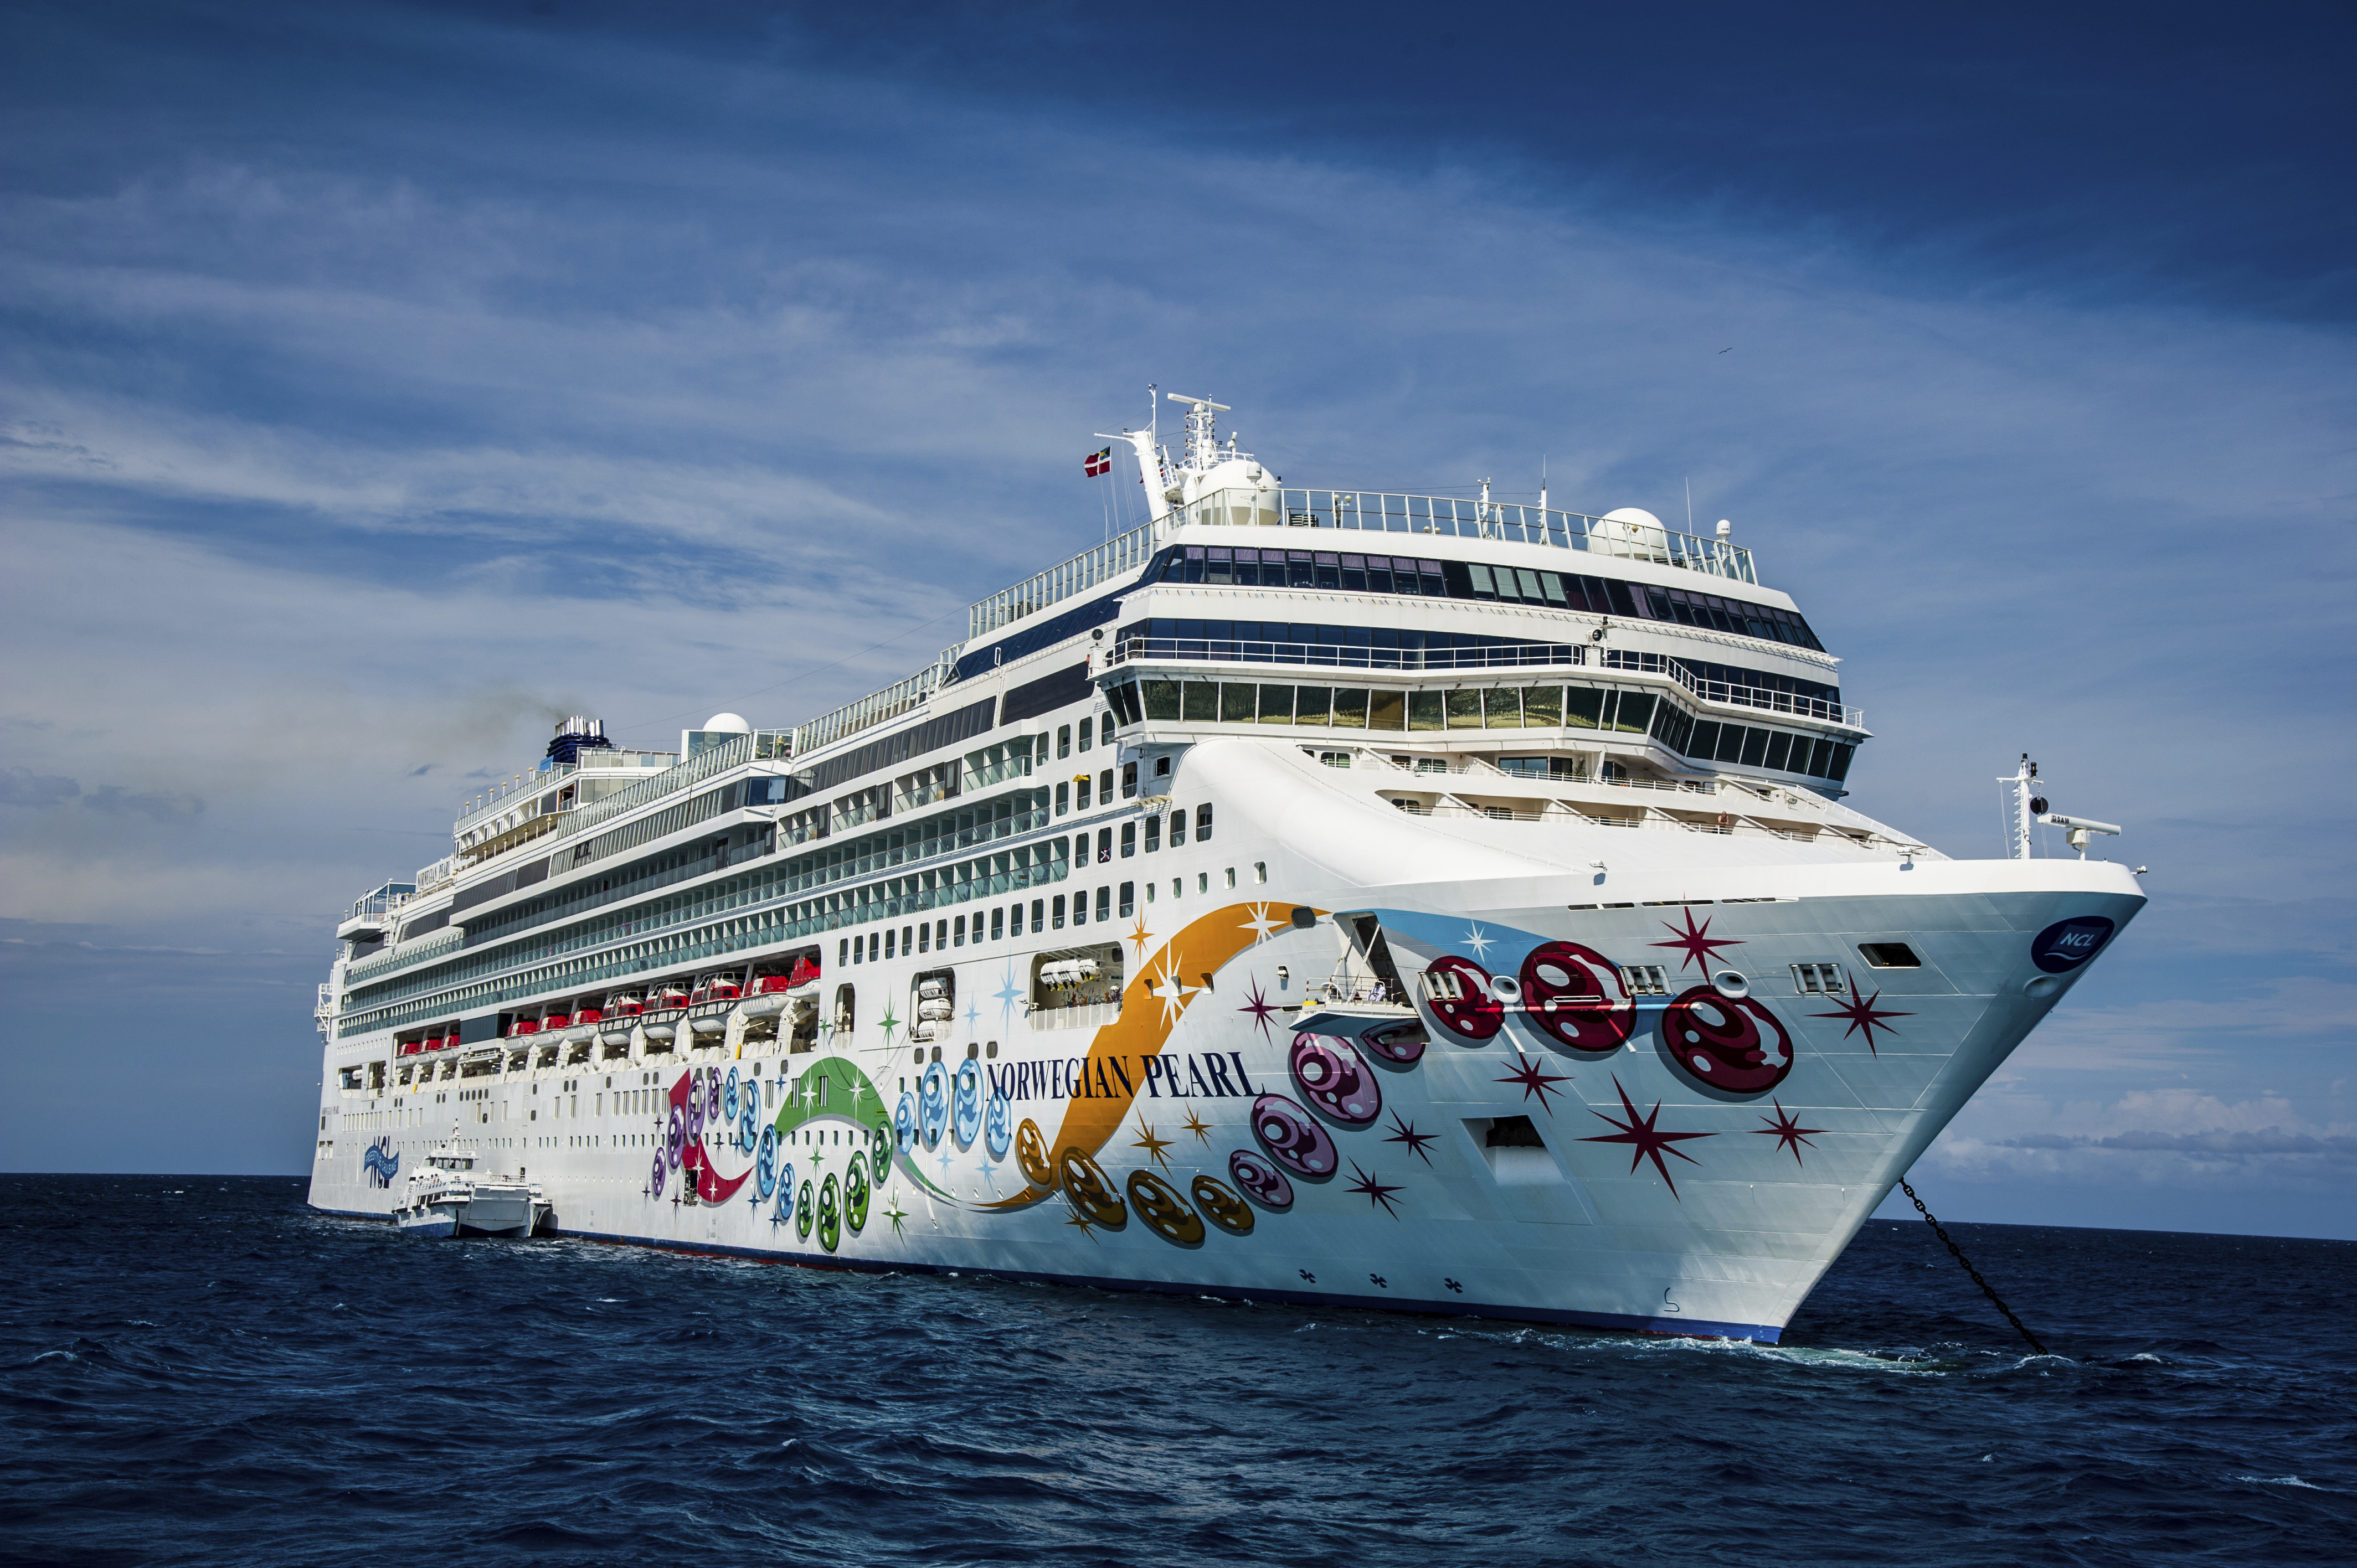 Thousands Stranded In Spain After Mechanical Failure On Norwegian Cruise Line Ship Pennlive Com